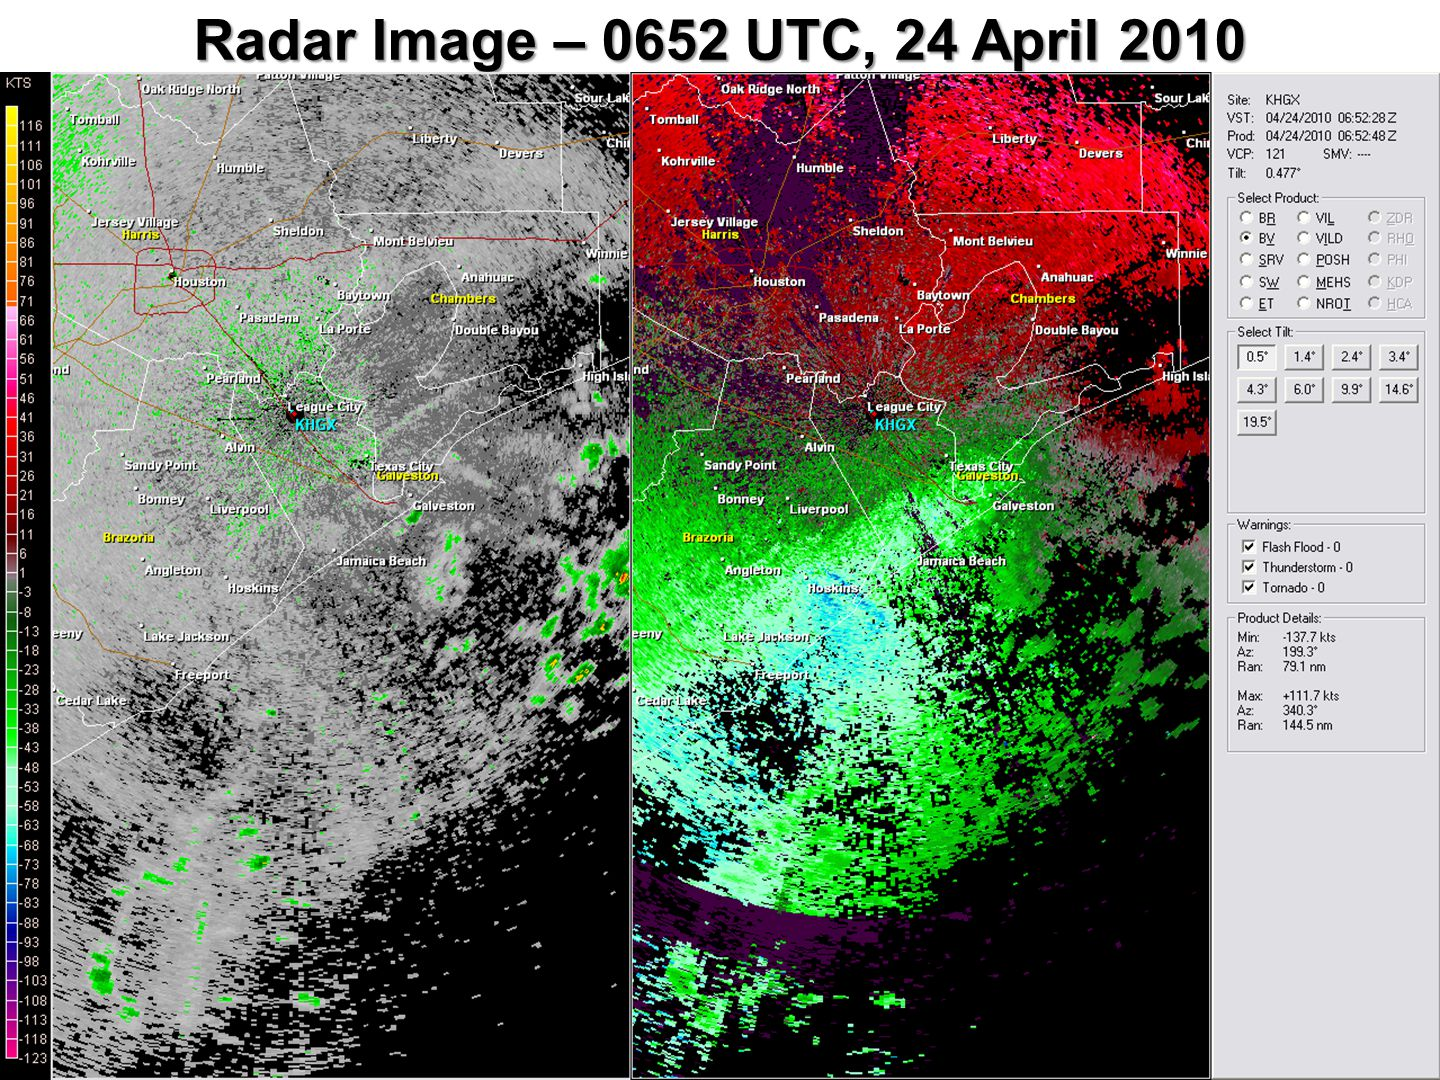 Radar Image – 0652 UTC, 24 April 2010